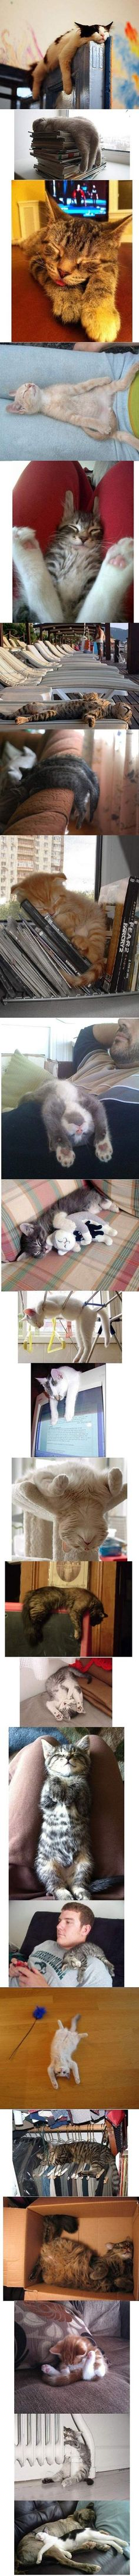 Funny - Cats sleep anywhere - www.funny-pictures-blog.com.  It's called cat napping....just drop and nap anywhere!